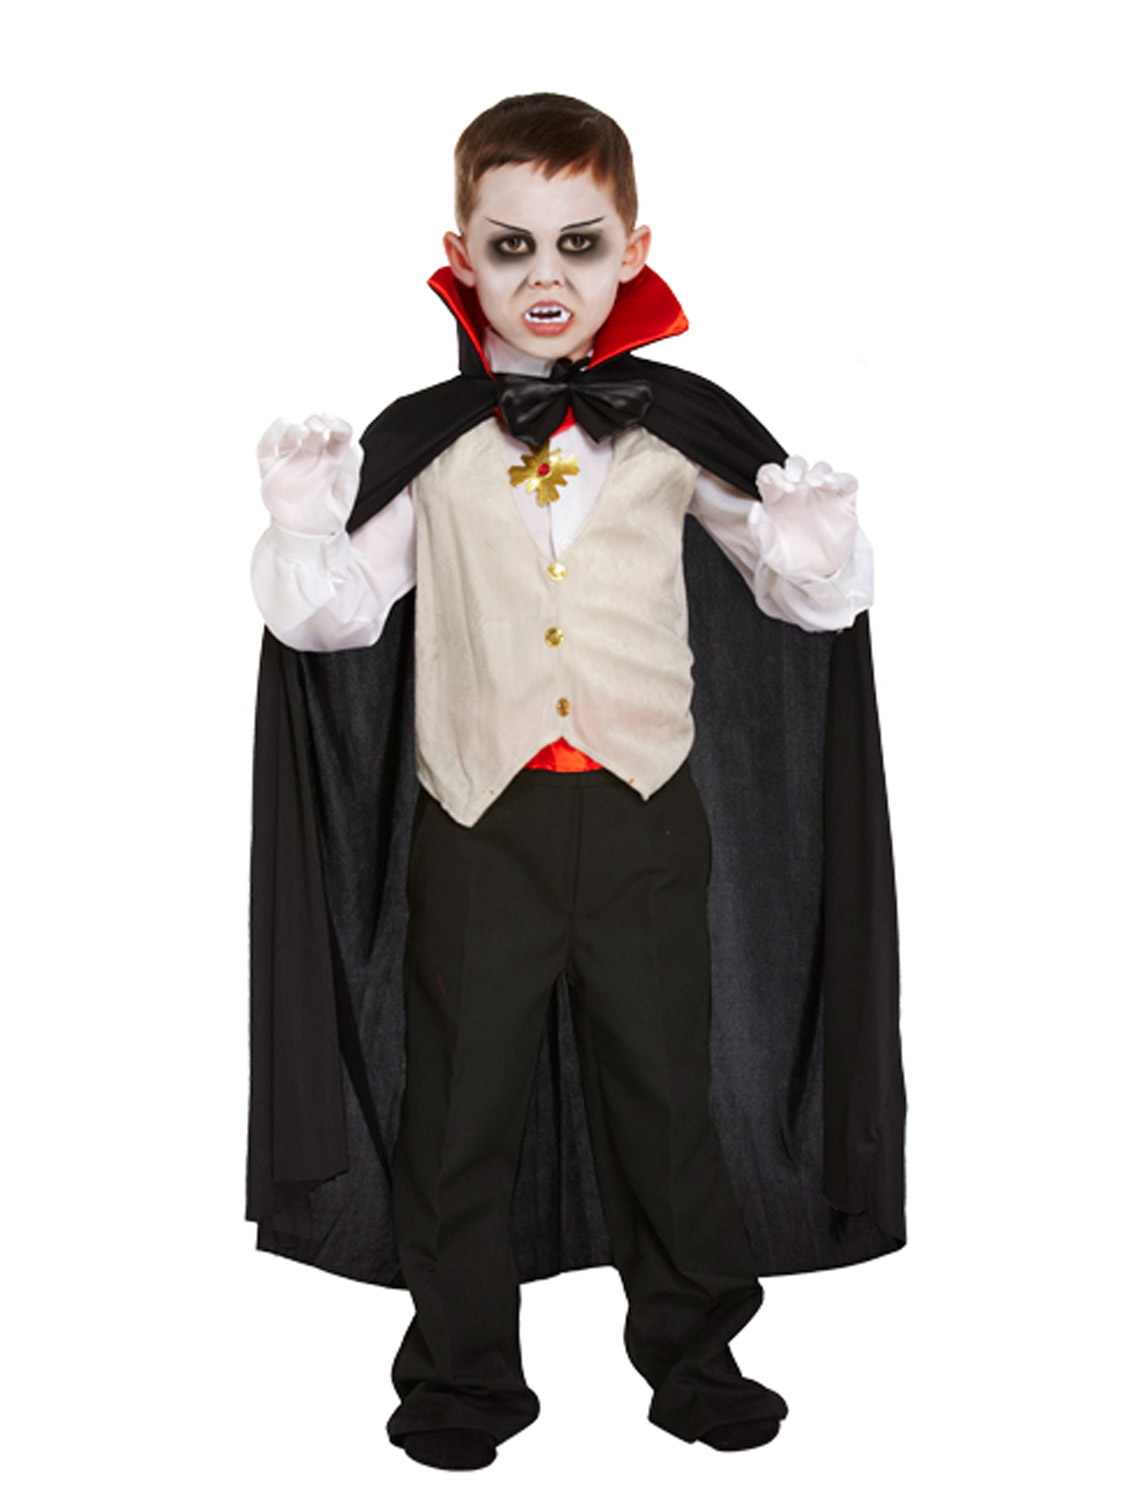 Details about Boys Vampire Costume Kids Halloween Dracula Fancy Dress  Outfit Childrens Party